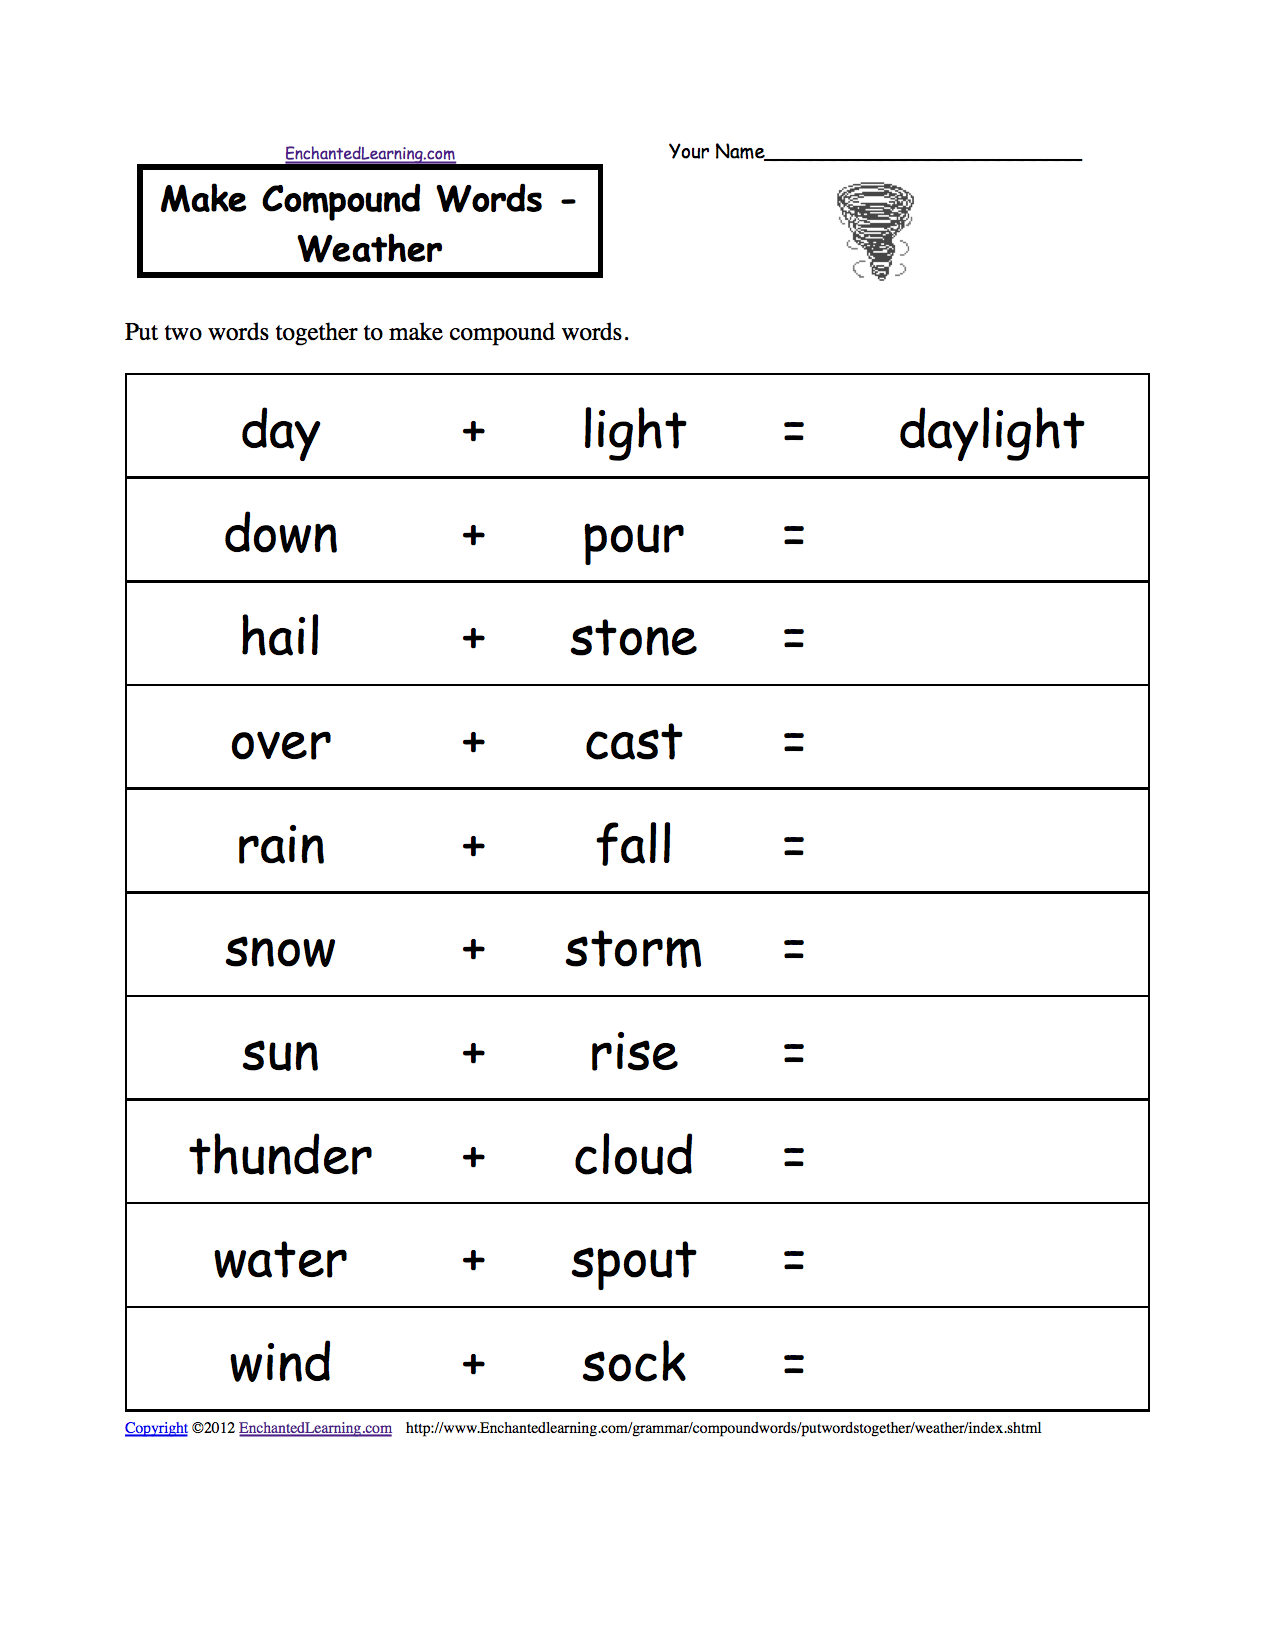 Worksheets Free Printable Weather Worksheets weather worksheets first grade free library download related activities at enchantedlearning com